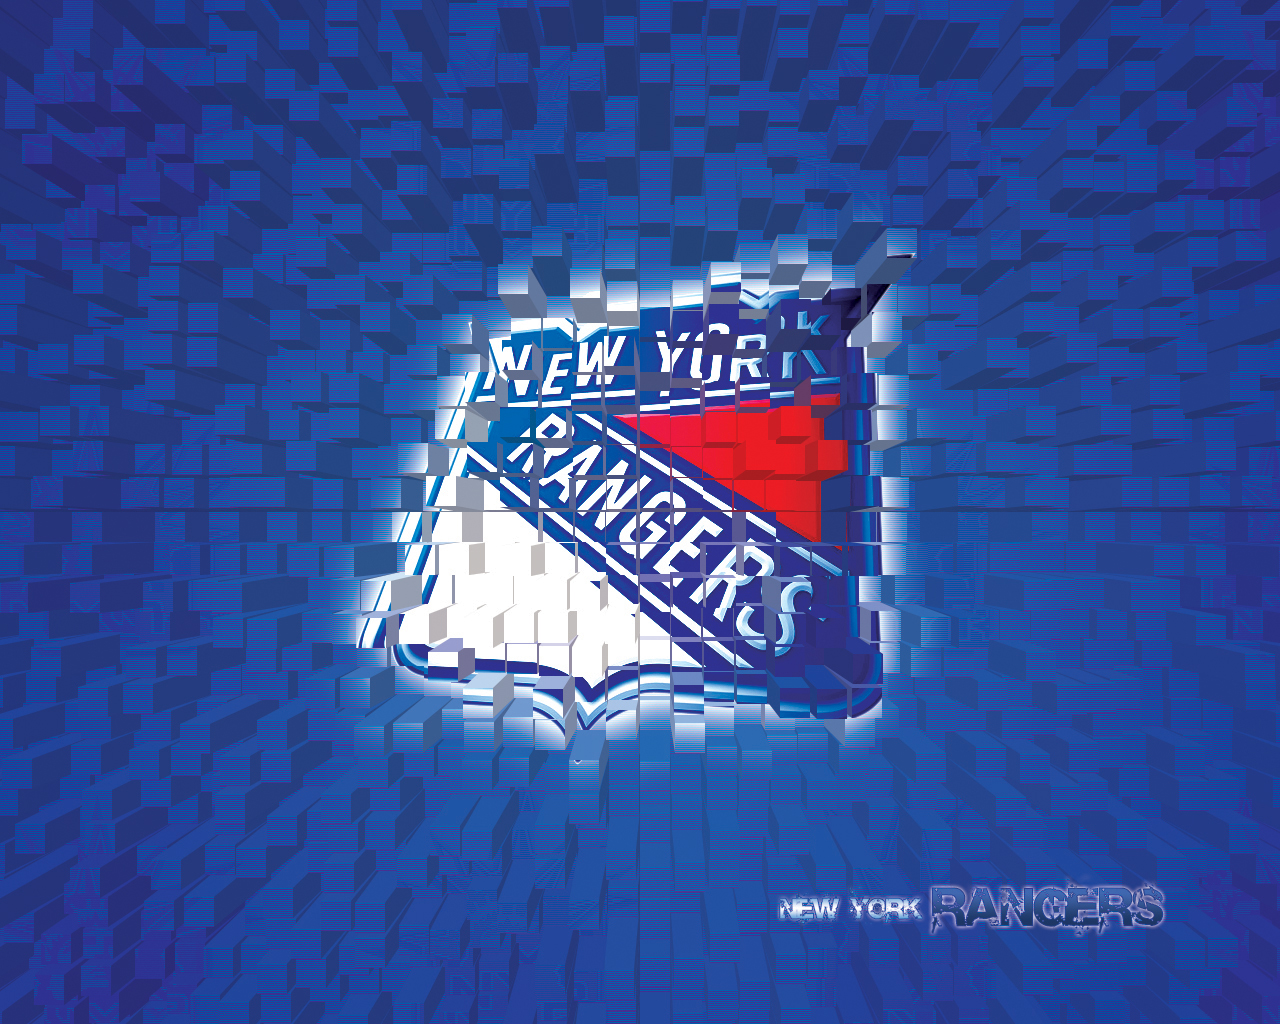 ny rangers wallpaper images - wallpapersafari